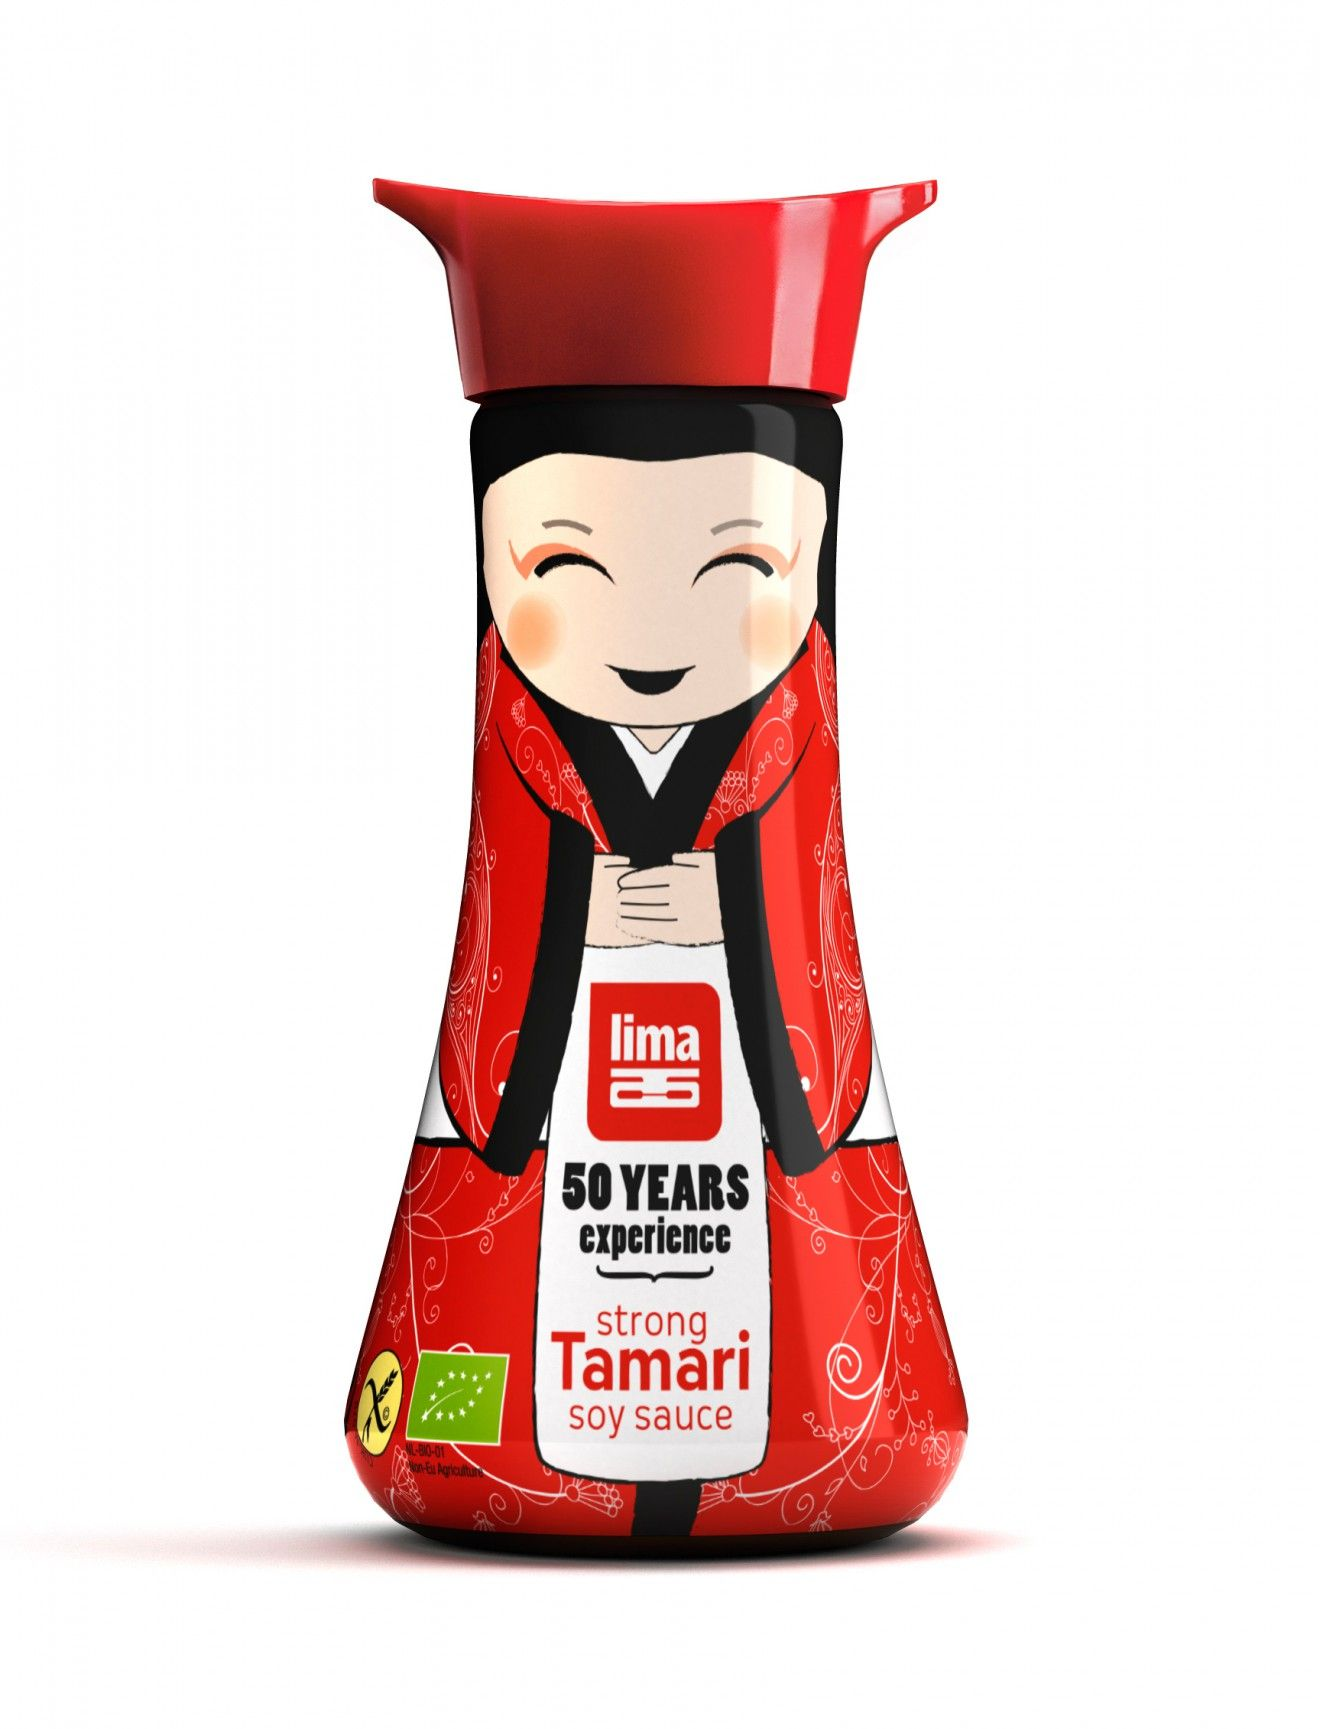 Quatre Mains Package Design Packshot Lima Soy Sauce Tamarin Food Packaging Design Yogurt Packaging Brilliant Packaging